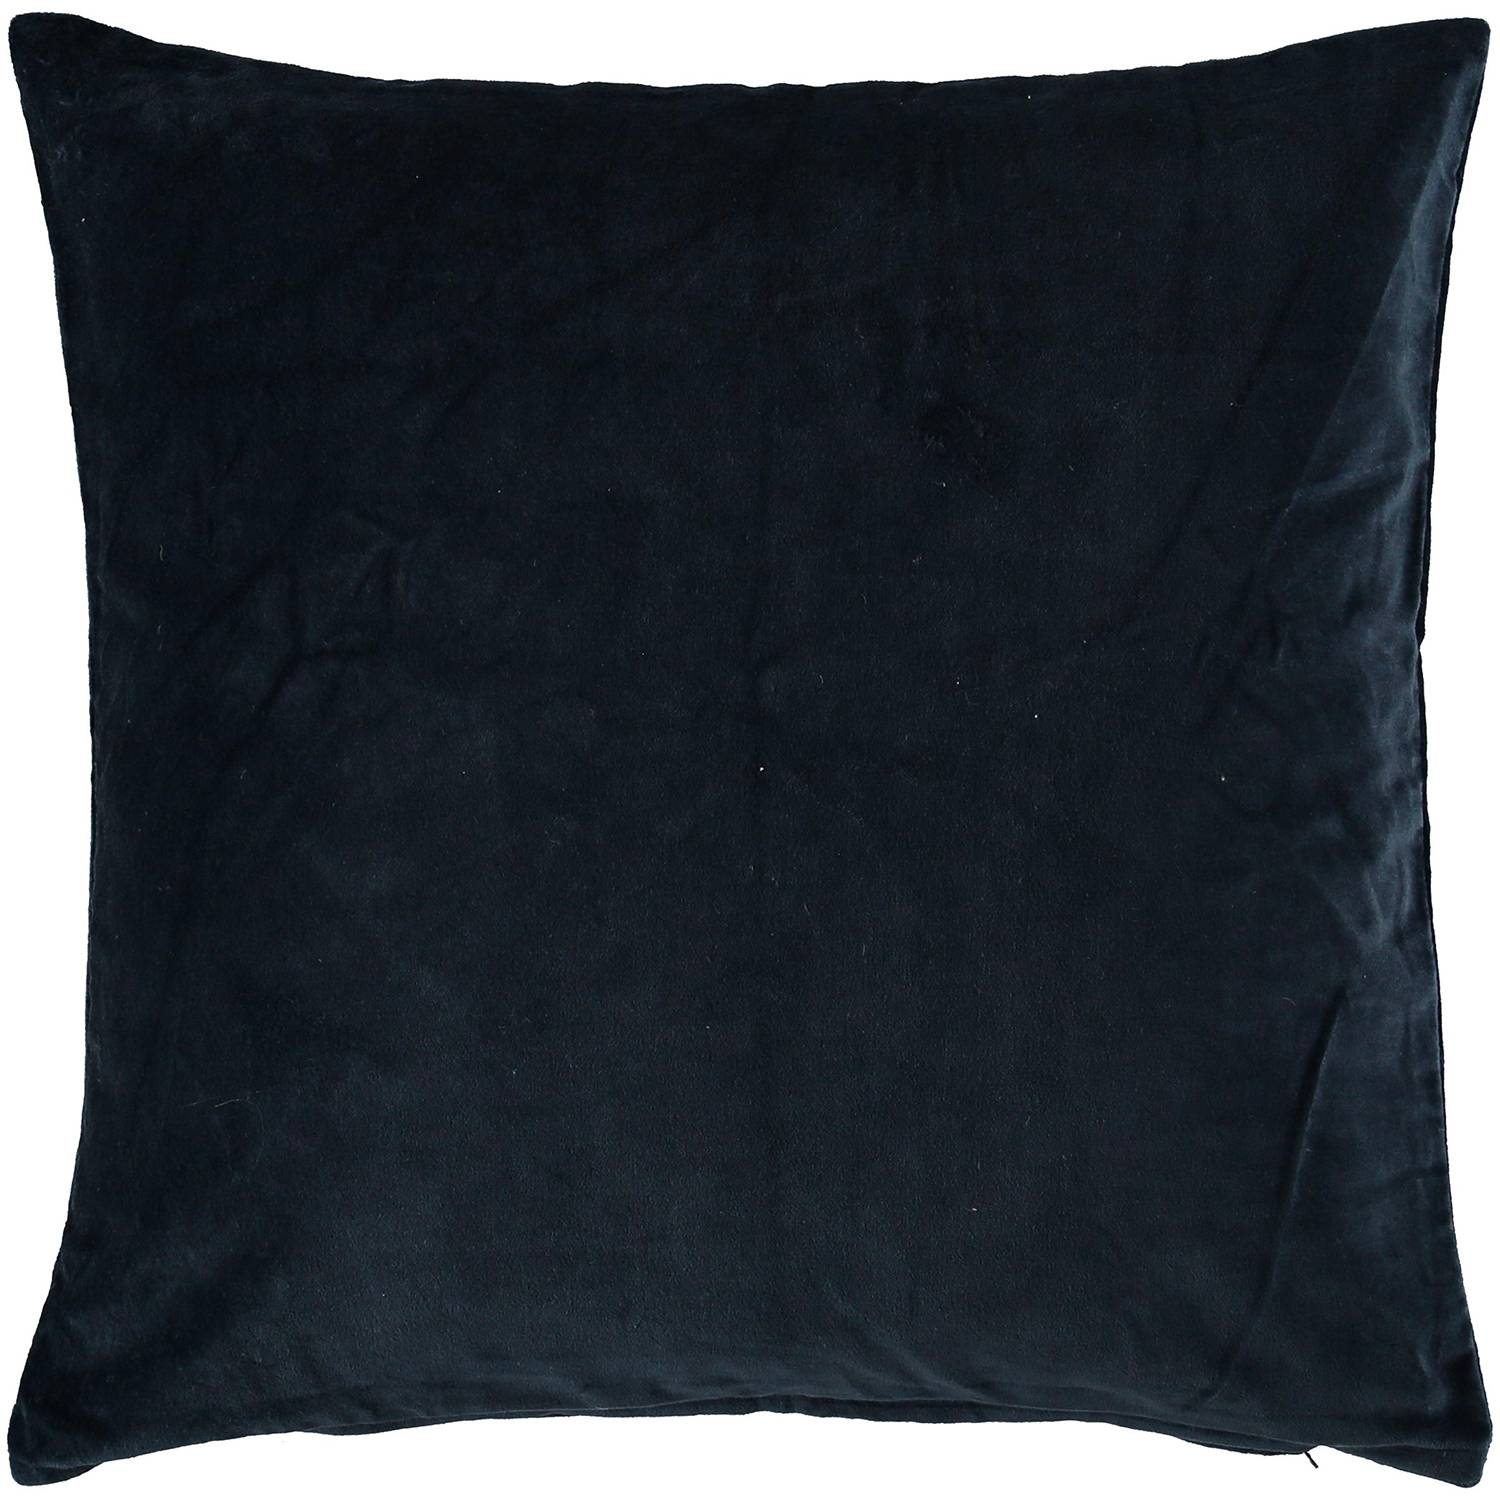 Gripsholm Ava Cushion Cover 50x50 cm, Ultramarine